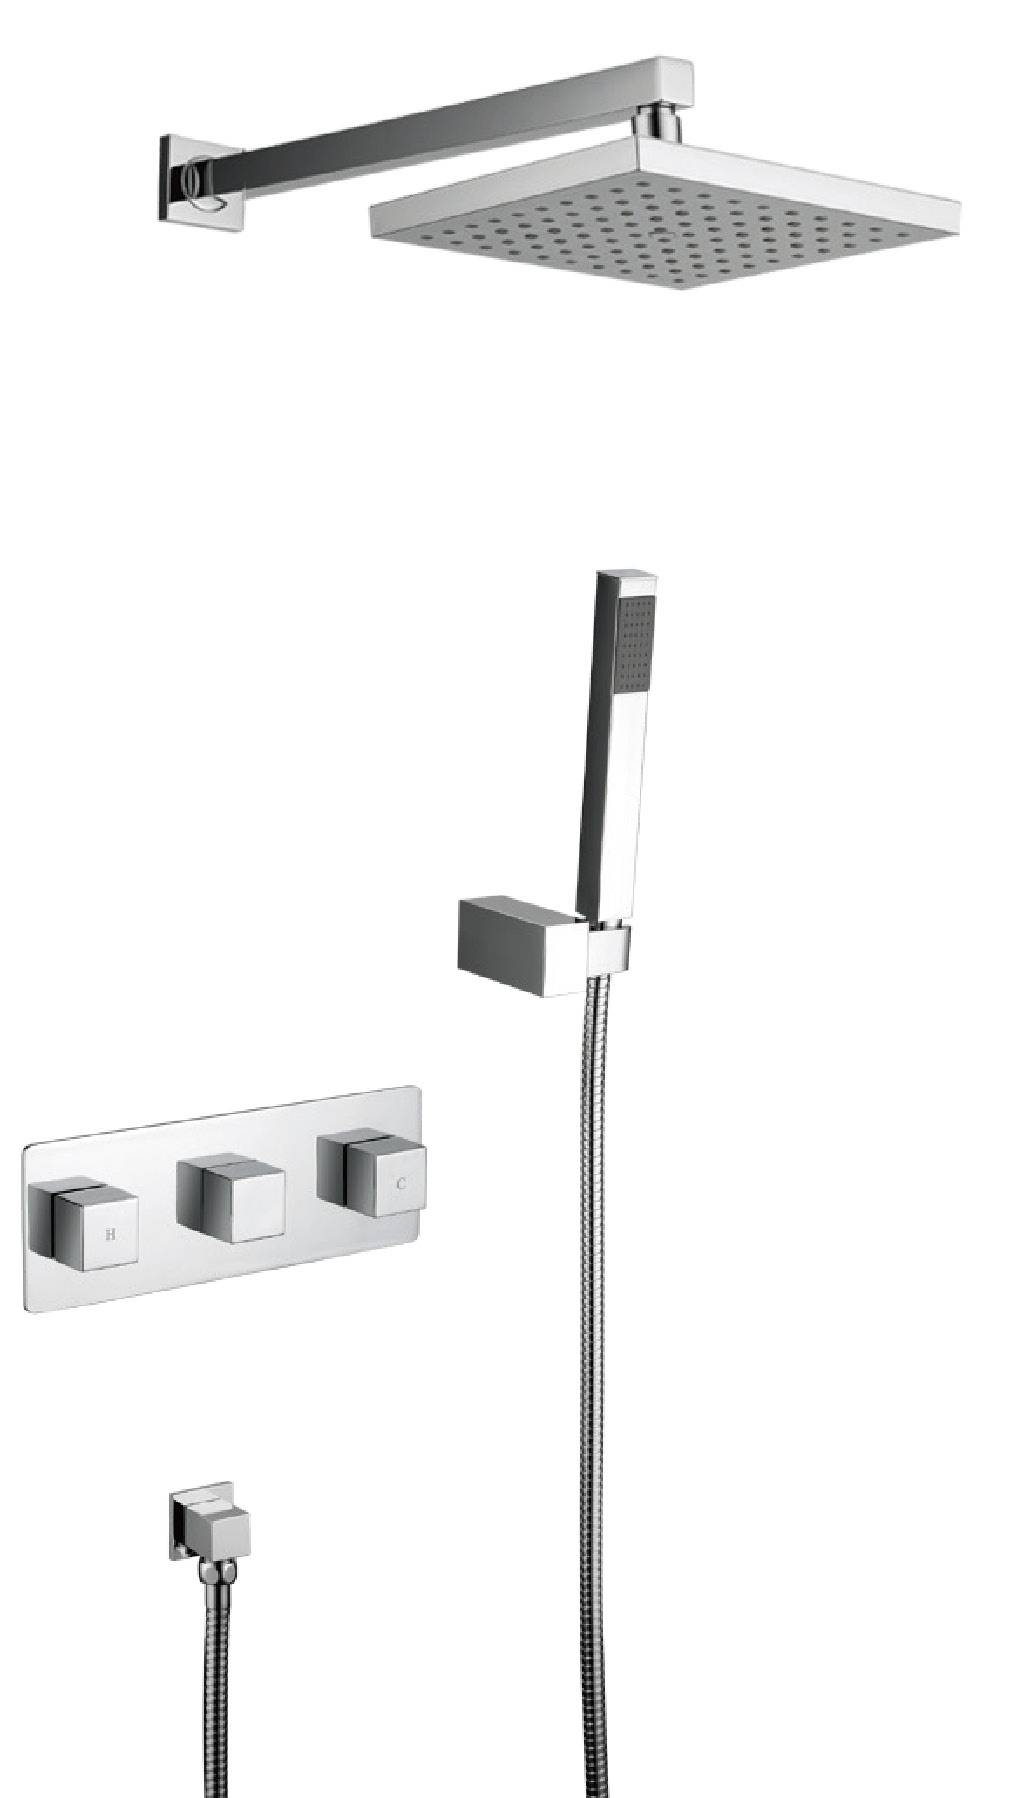 High quality chrome brass wall mounted bathroom concealed shower mixer